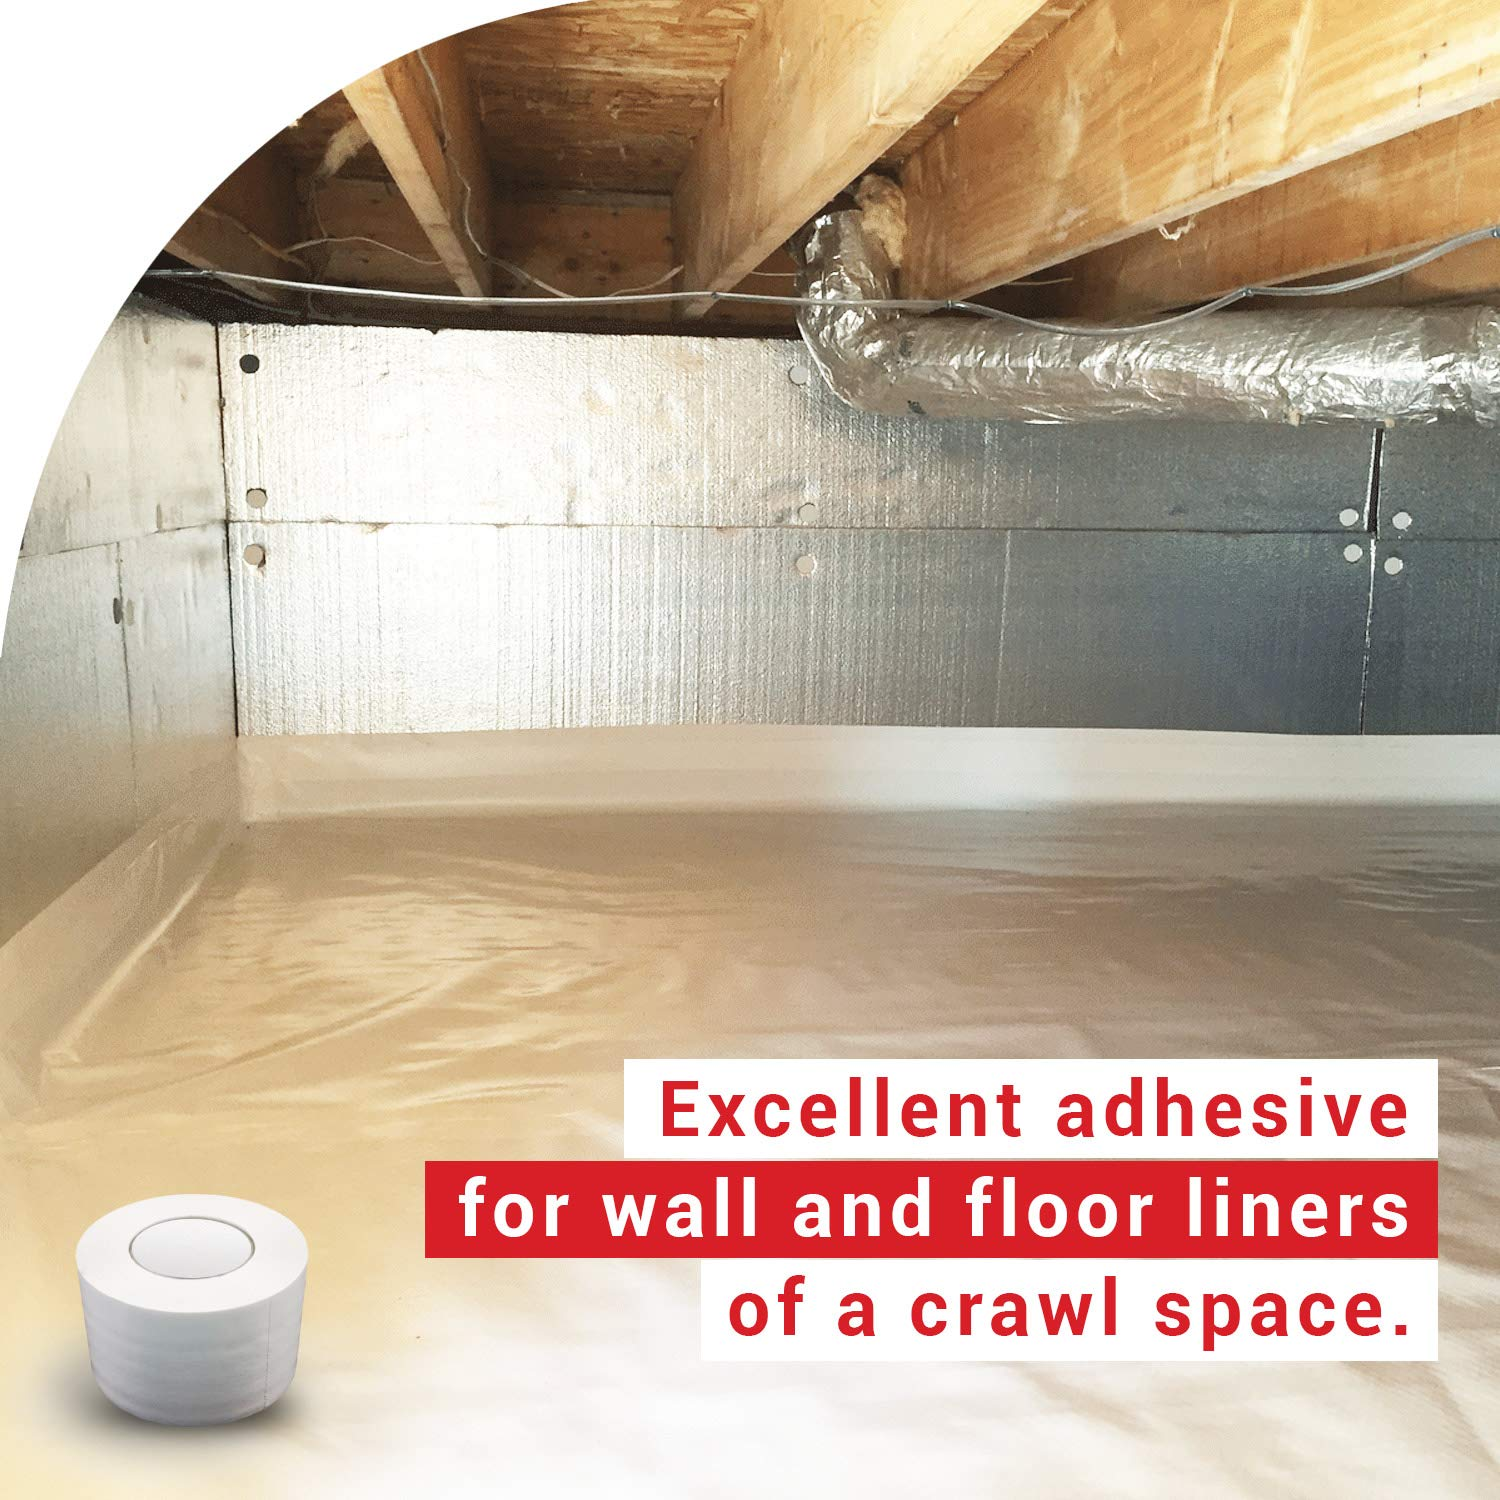 Red Encapsulations Carpet Padding and More Wall and Floor Liner for Crawl Space Moisture Barriers Vapor Barrier Seam Tape 4 x 180